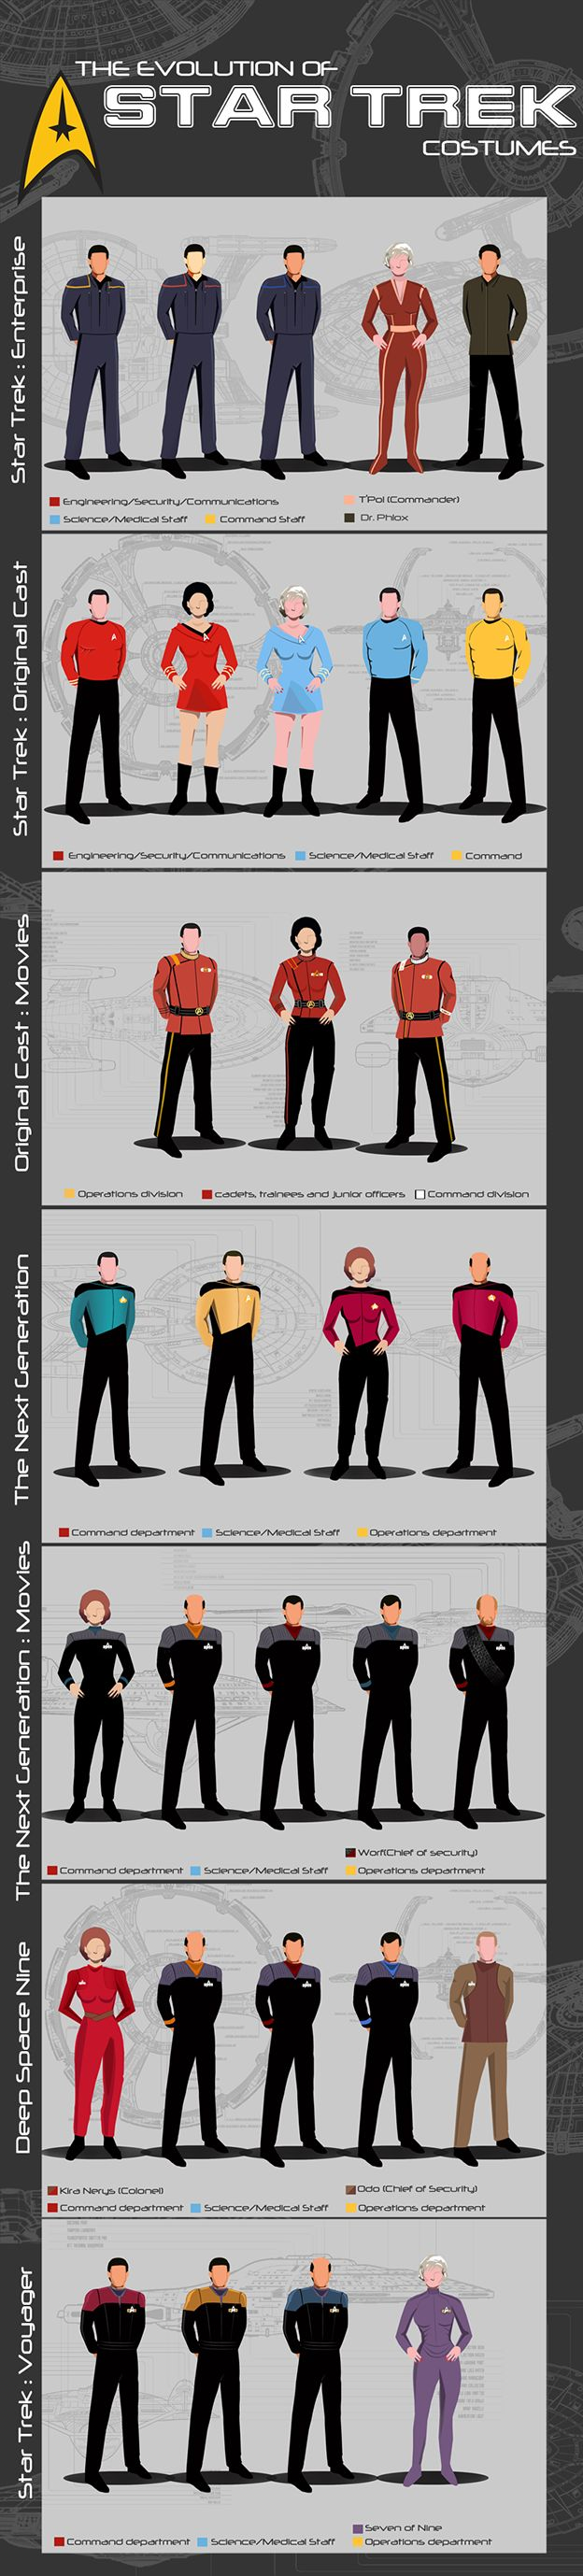 Star Trek Uniform Infographic by TodorKolevDesign  Too bad they skipped the Motion Picture uniforms!  #startrek